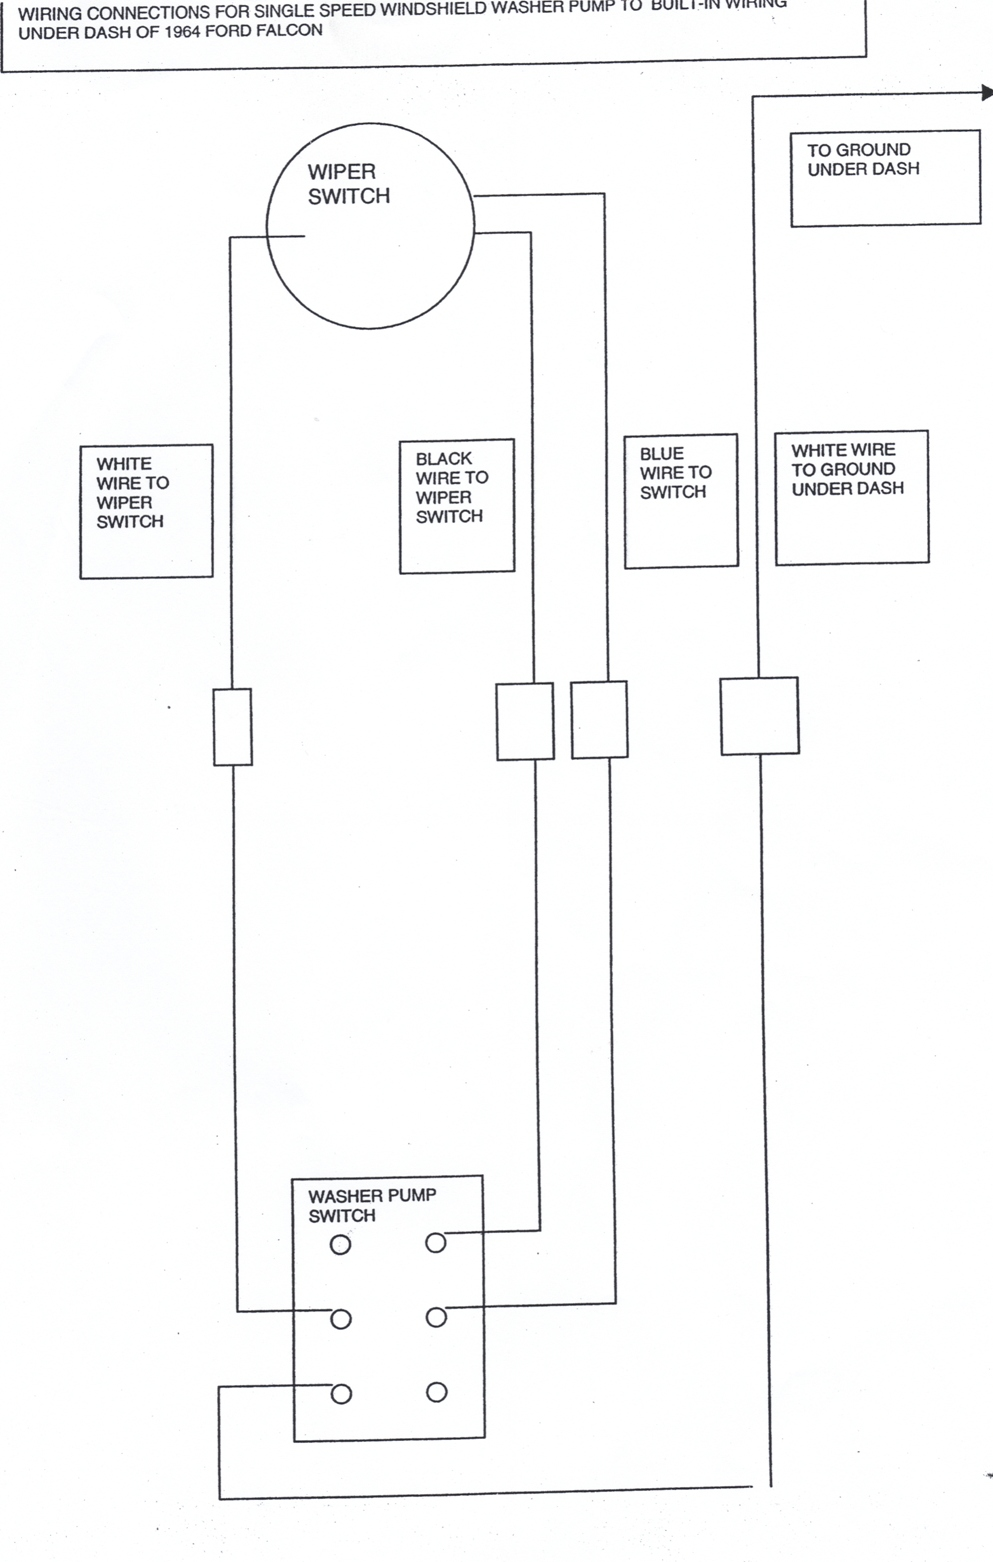 Wiring Diagram For 64 Falcon Great Installation Of Ford Ignition Diagrams Rh Wizard Com Dyna Coil